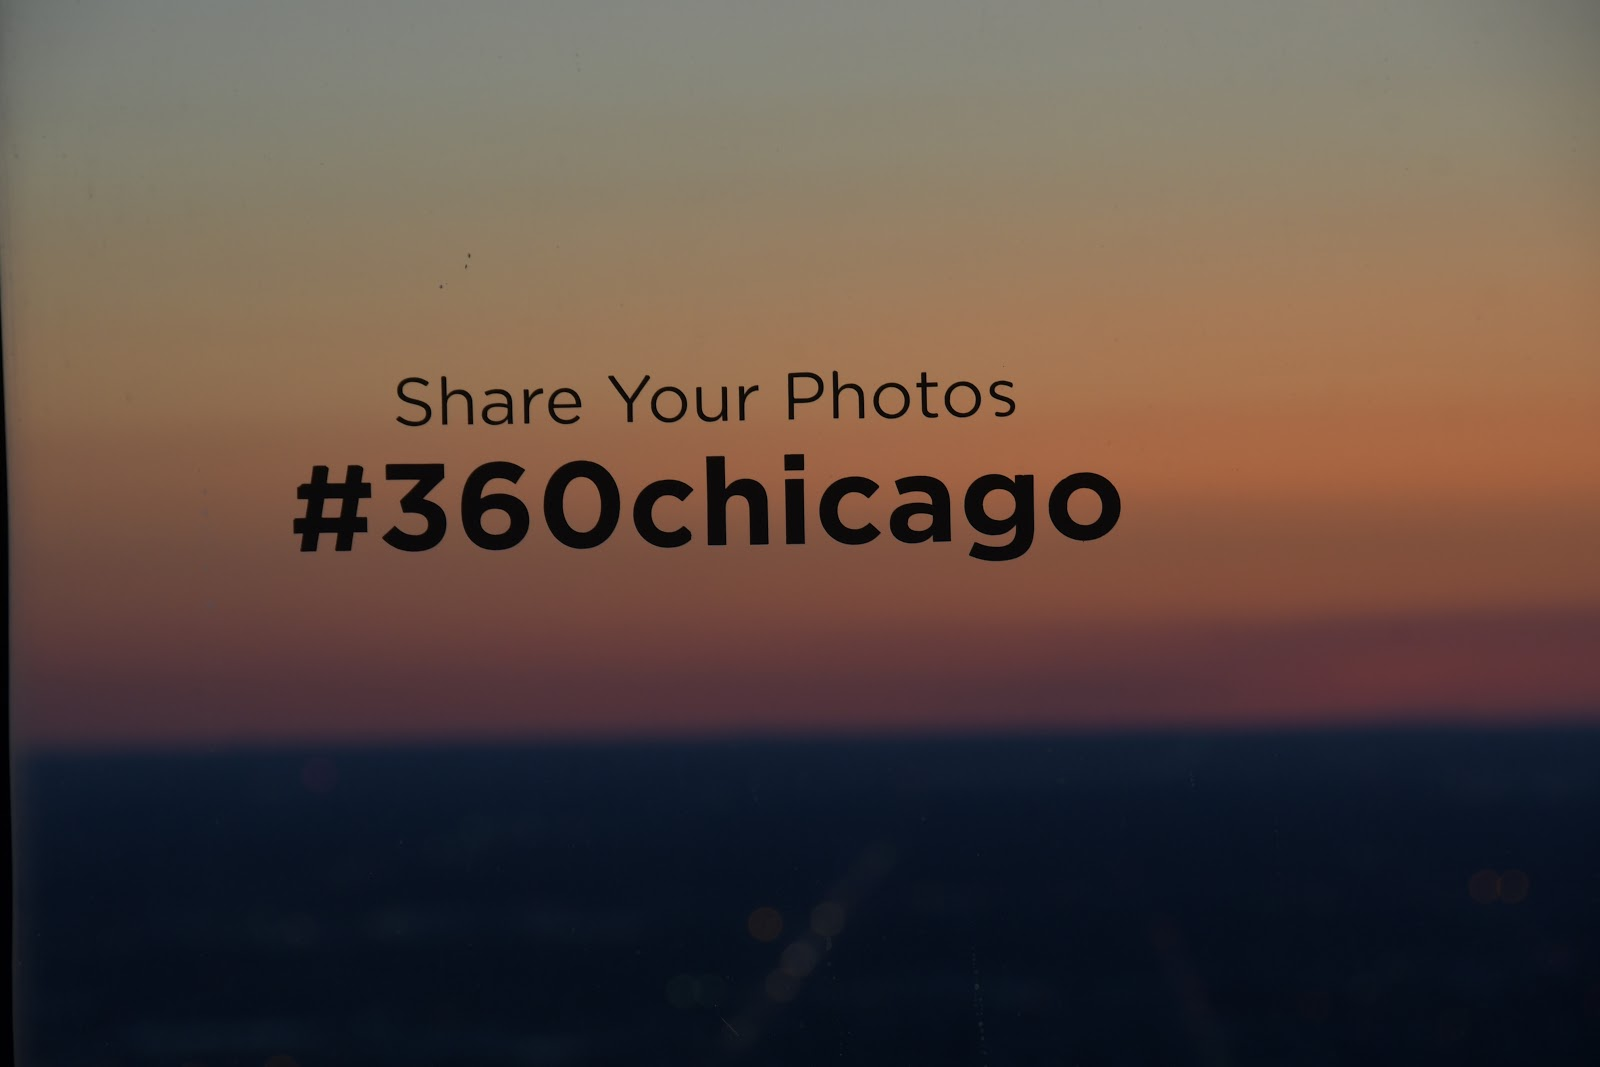 Chiil mama review new spring drinks and daily fun at 360 chicago from the 94th tour and all your burning trivial chicago questions answered on wednesdays tap into your inner artist and paint to your hearts desire fandeluxe Images